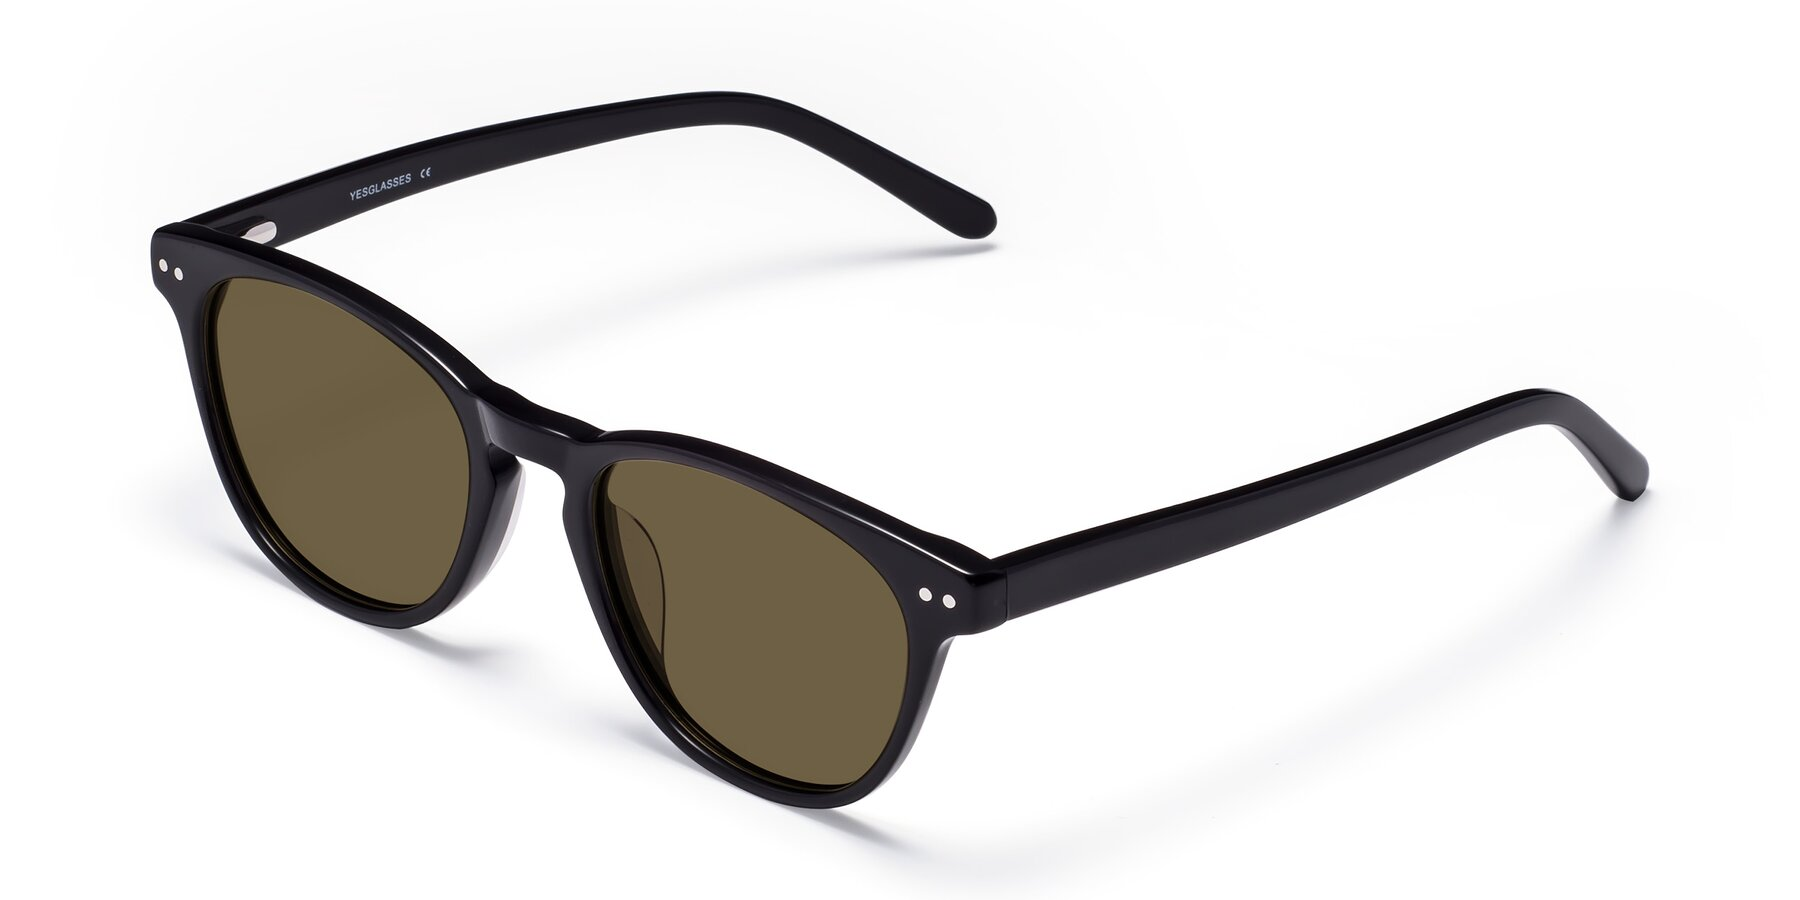 Angle of Blaze in Black with Brown Polarized Lenses